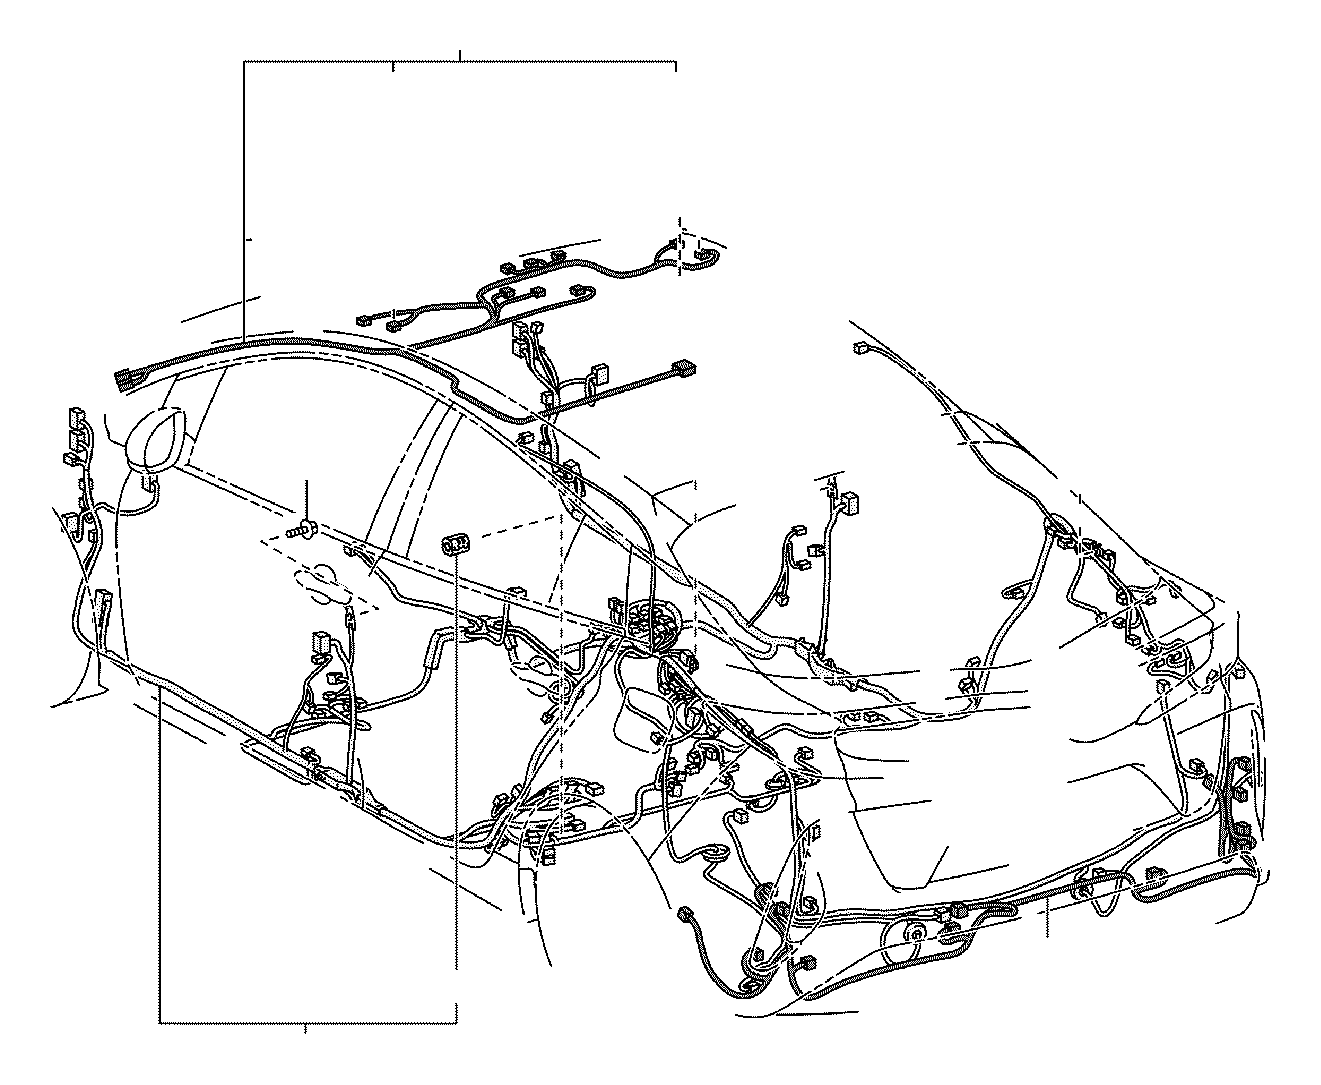 Toyota Prius Wire, roof, no. 1. Engine, floor, connector